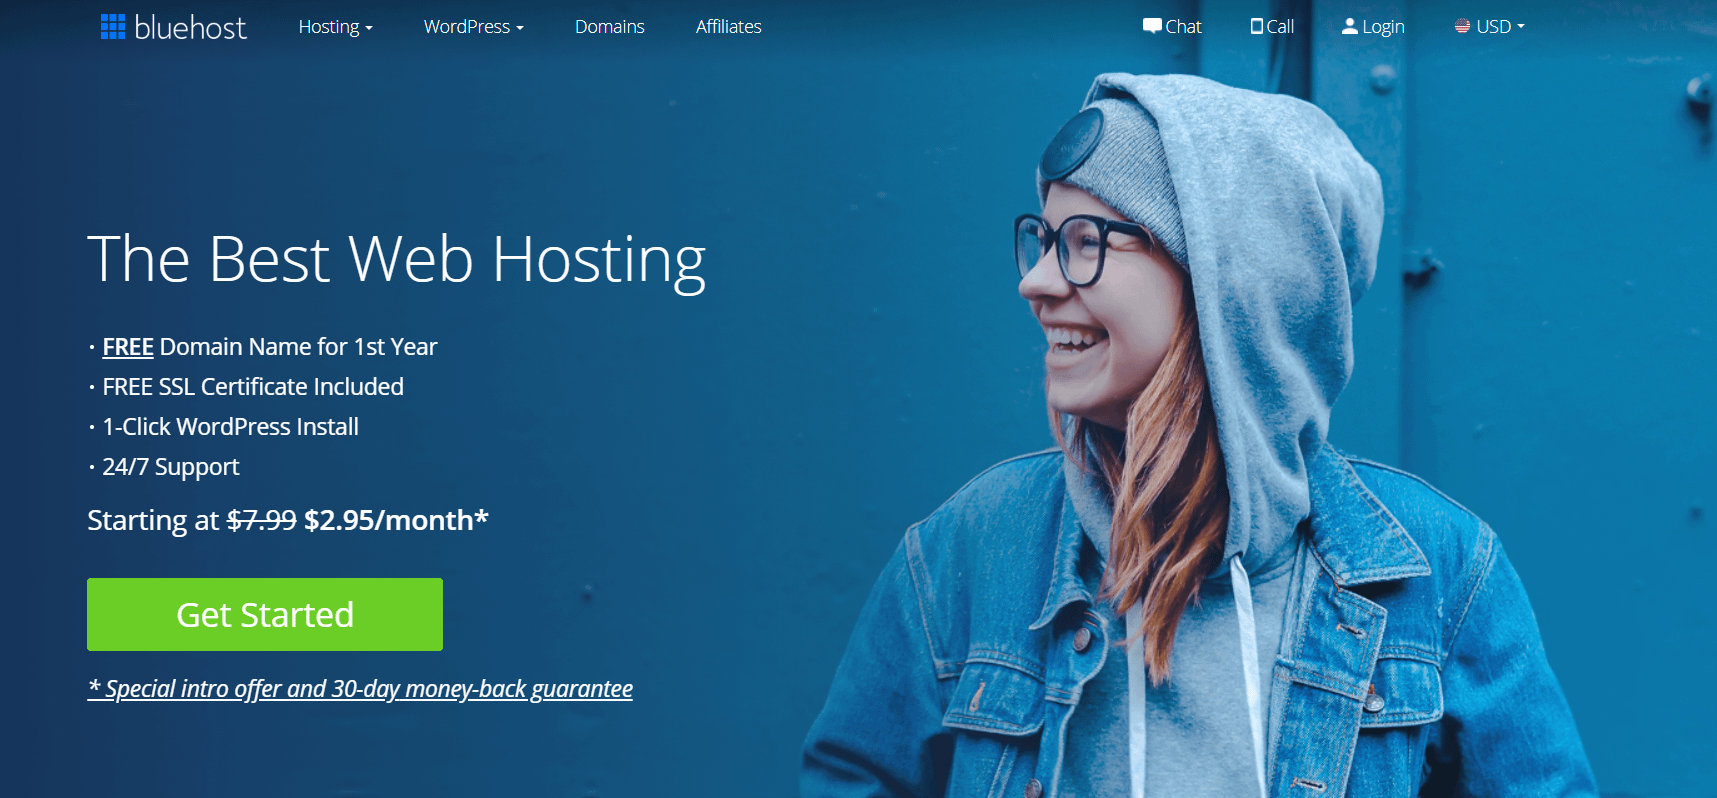 WordPress and Bluehost make a great Wix alternative